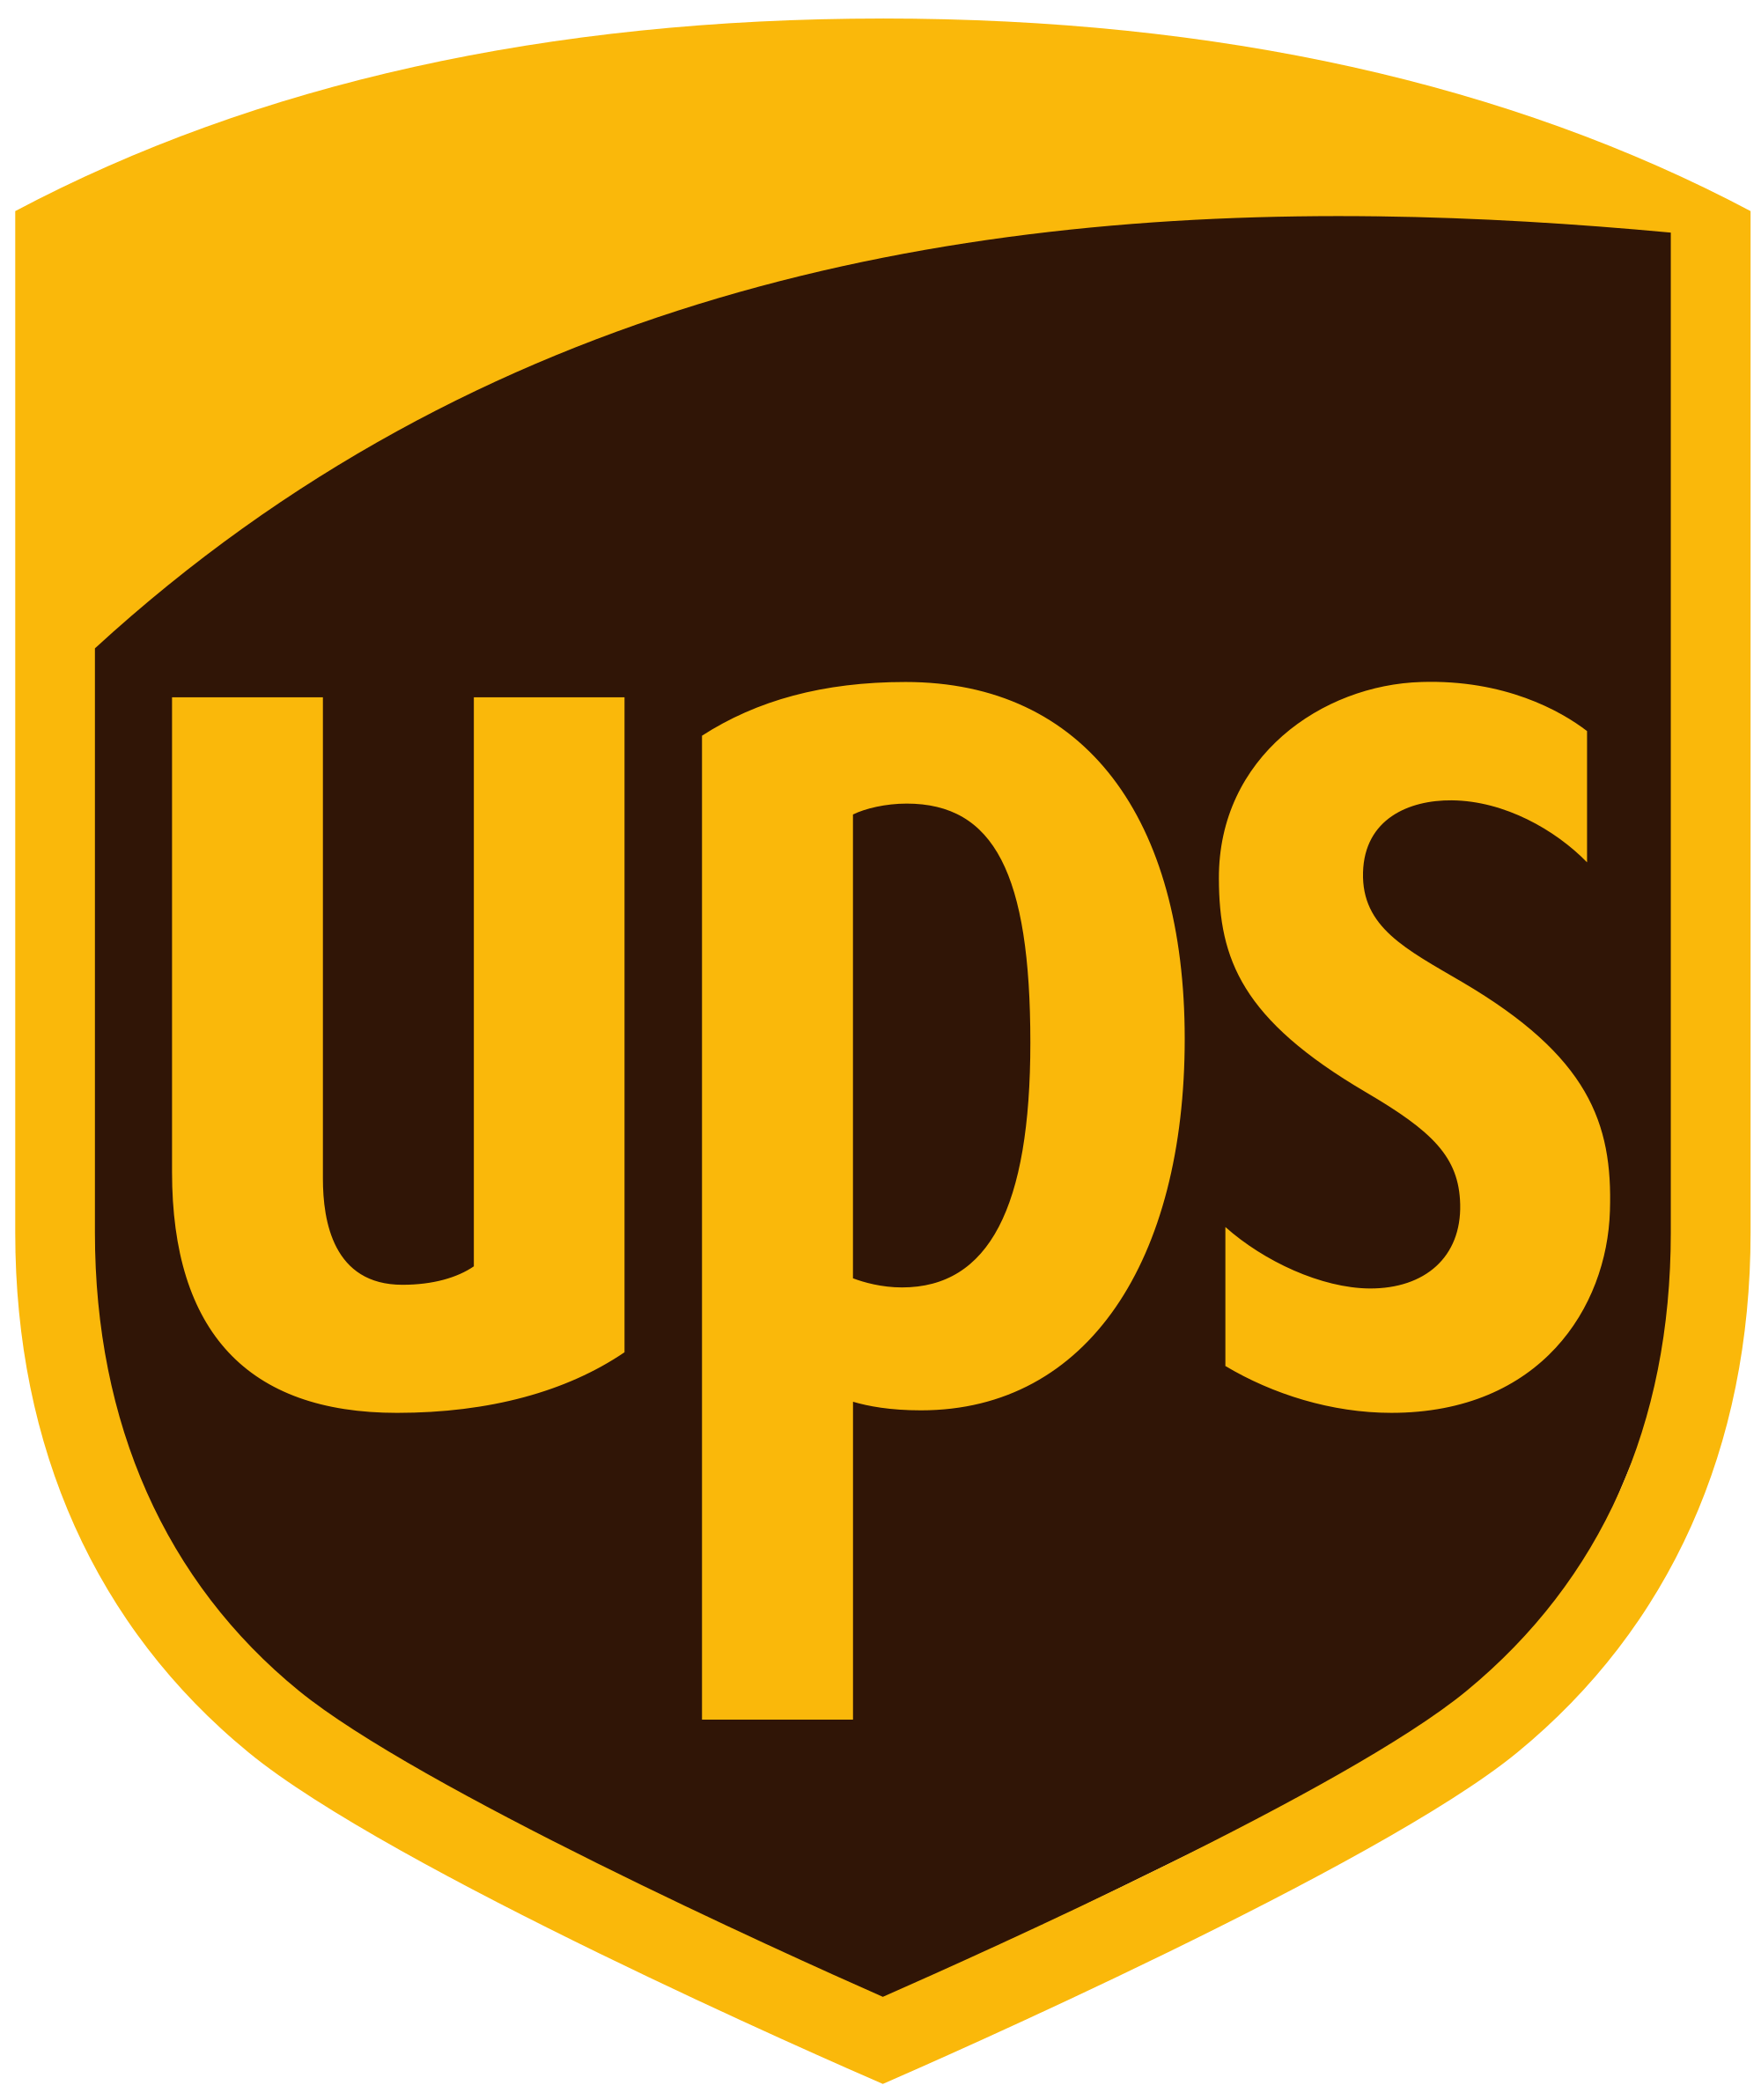 Ups airlines wikipedia united. Name clipart air transport